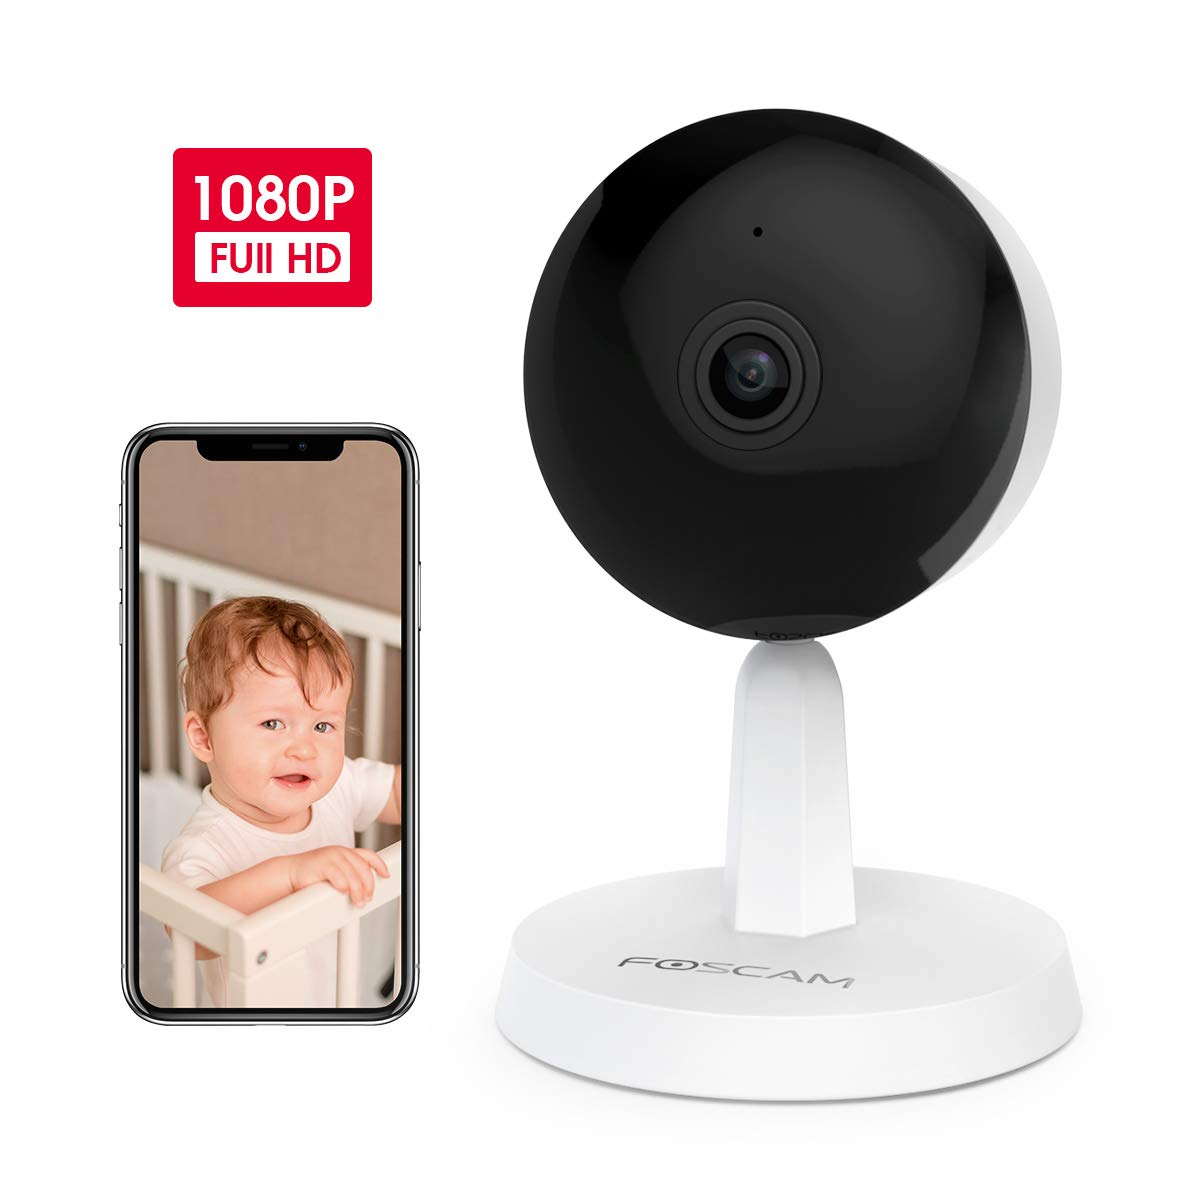 Baby Monitor,Foscam X1 1080P Wireless Smart Home Security Pet Camera with AI Human Detection, Sound Detection, One-Button Call, 2-Way Baby Monitor Audio, Free Cloud Storage Included